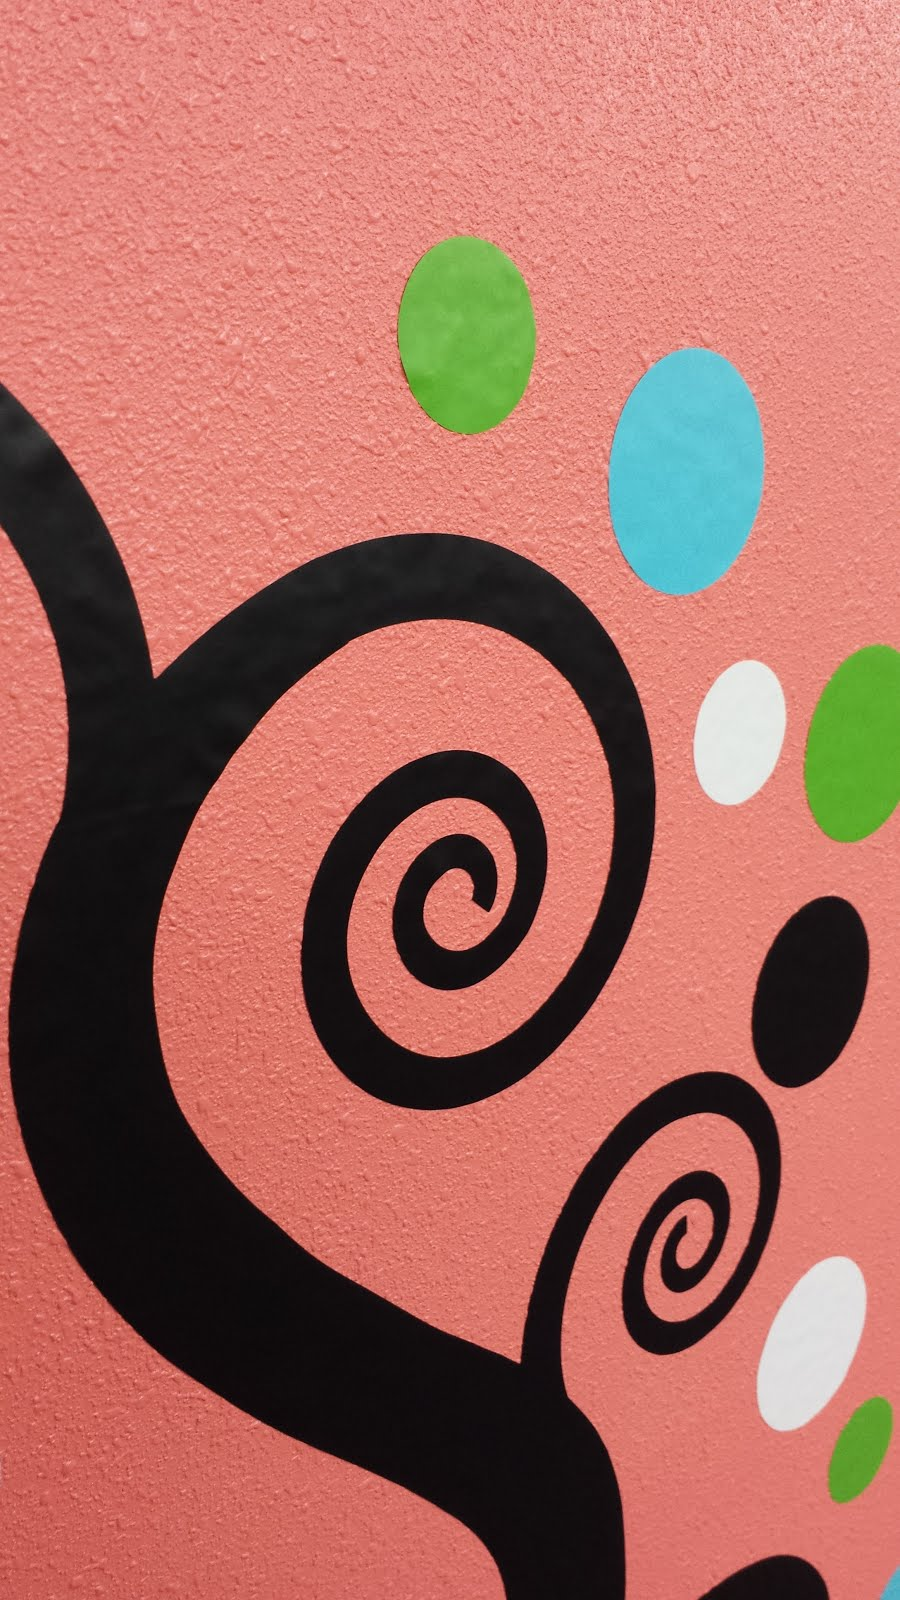 Become An Expert On Wall Stickers - Vinyl decals for textured walls